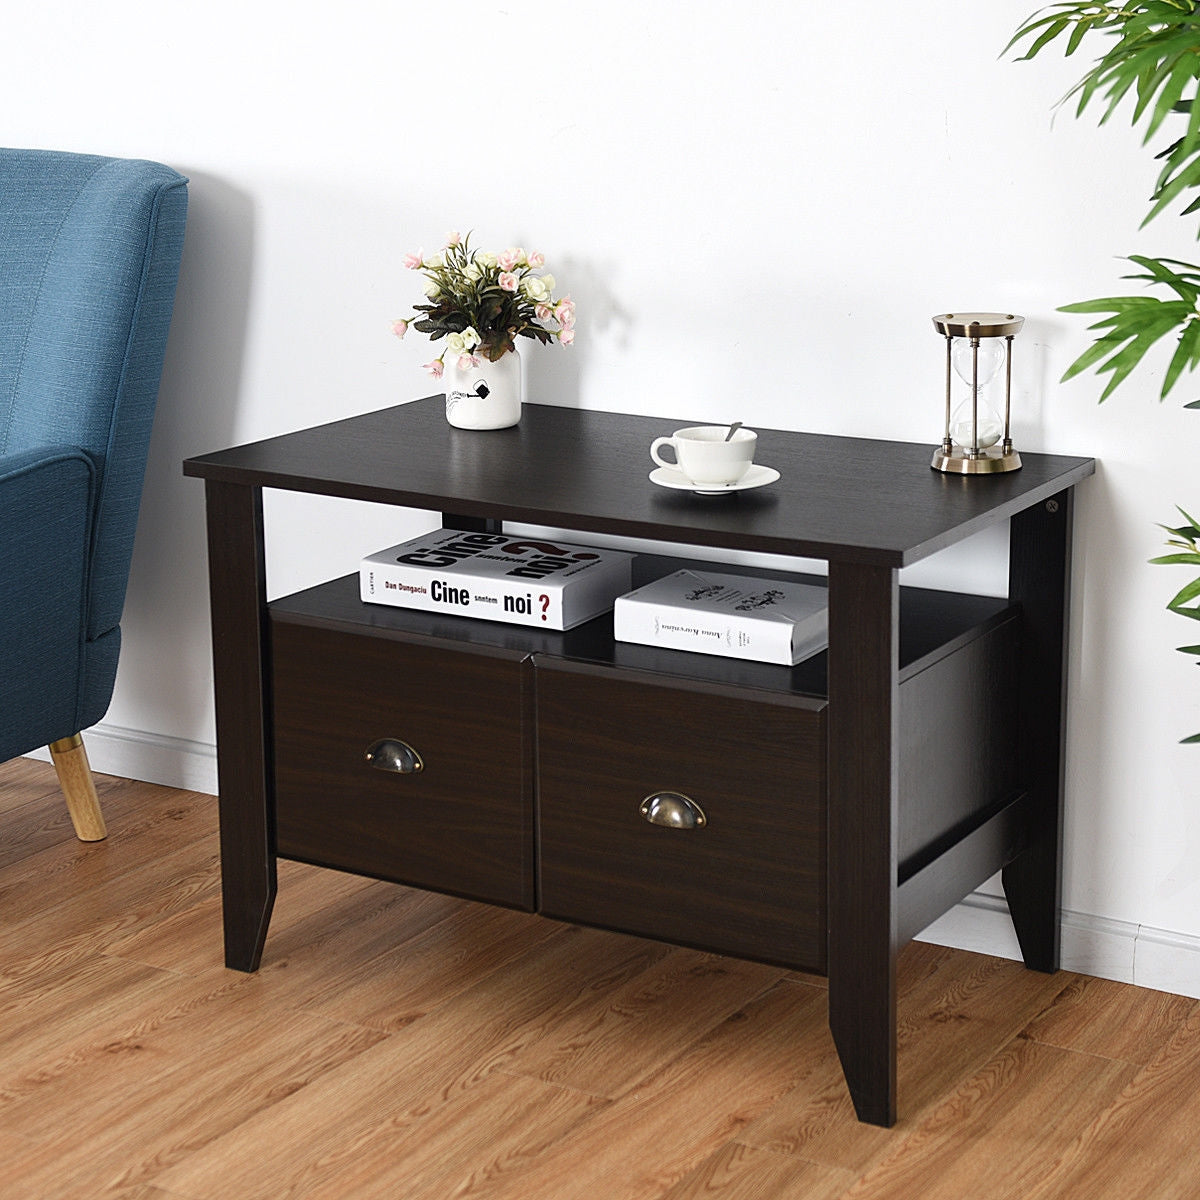 Multi-function Retro Coffee Cabinet Table with 2 Drawers